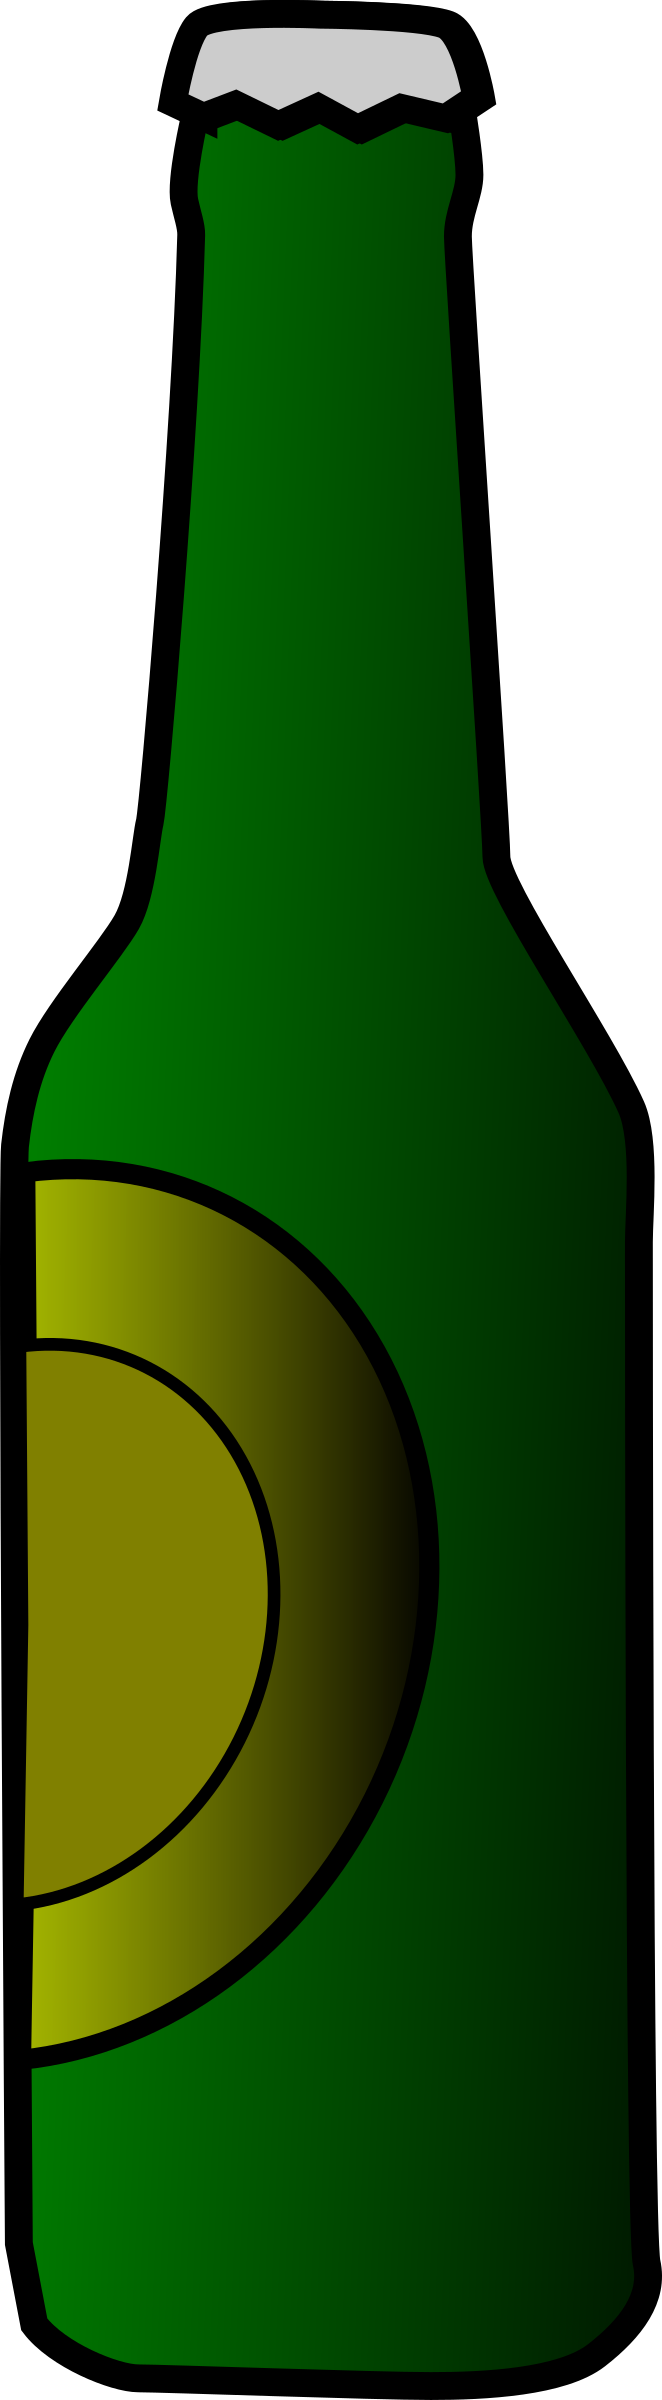 Beer bottle clip art png. Free clipart wallpapers download